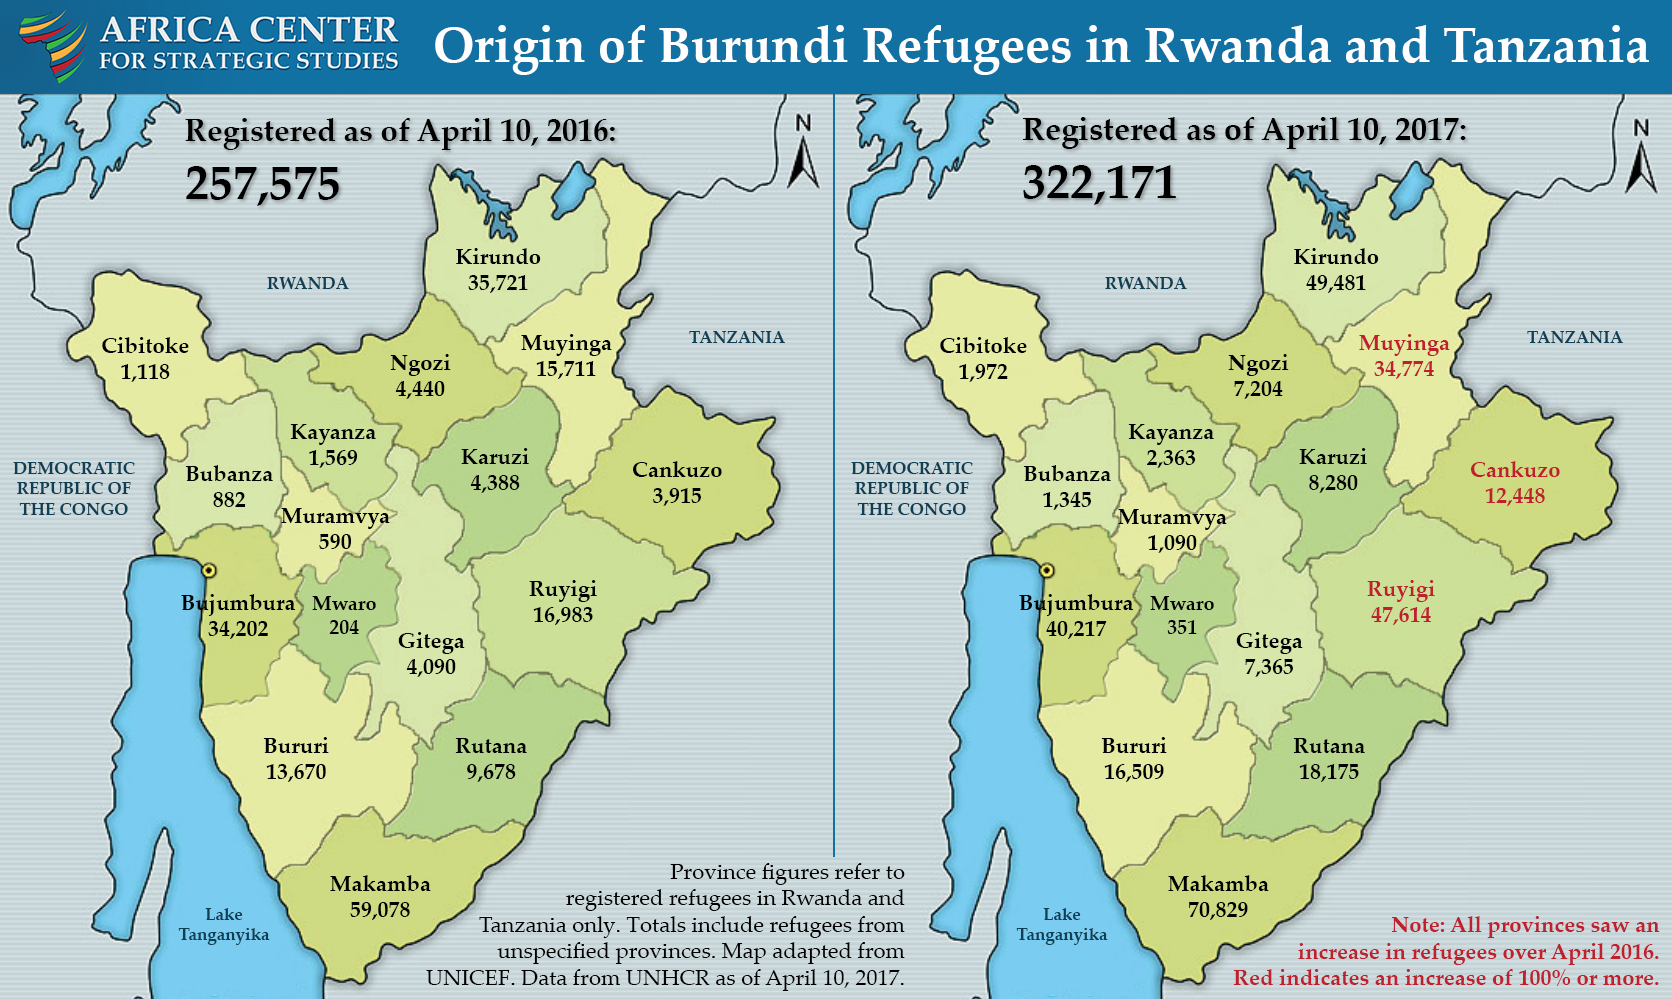 Burundi refugee flows by province of origin